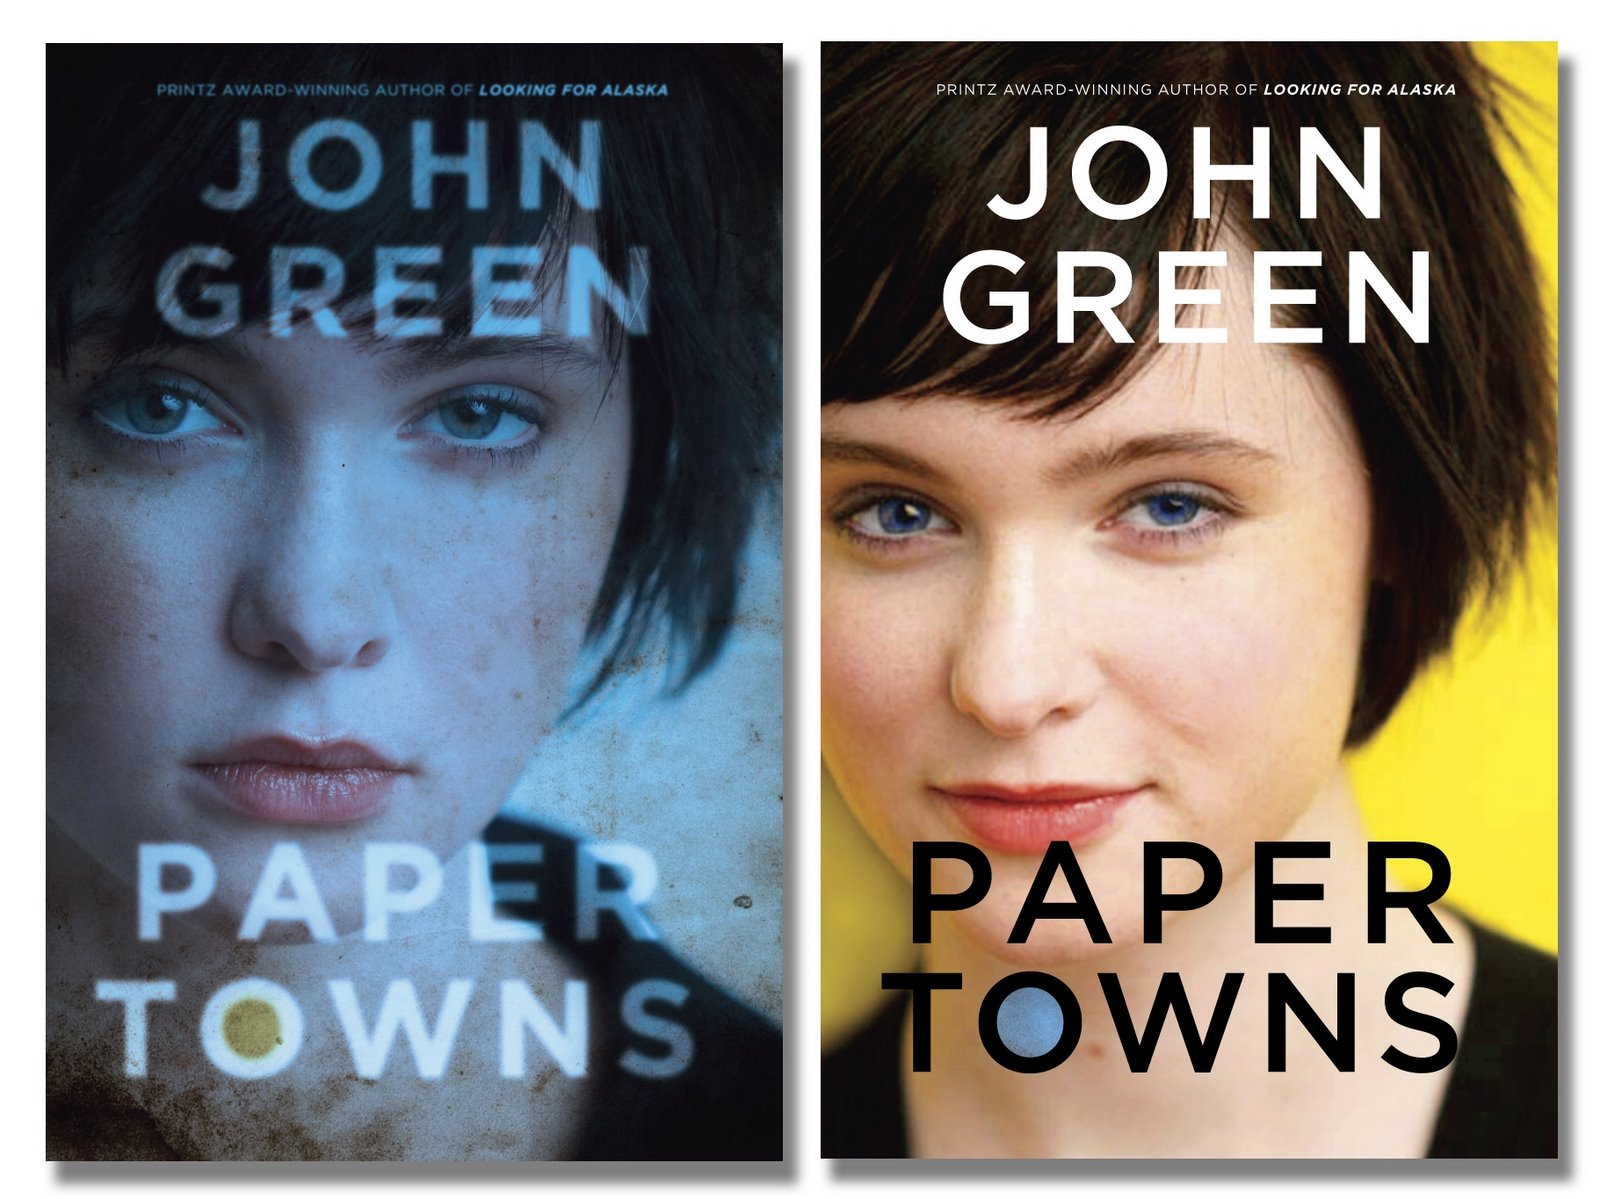 Covers for the hardcover editions of Paper Towns